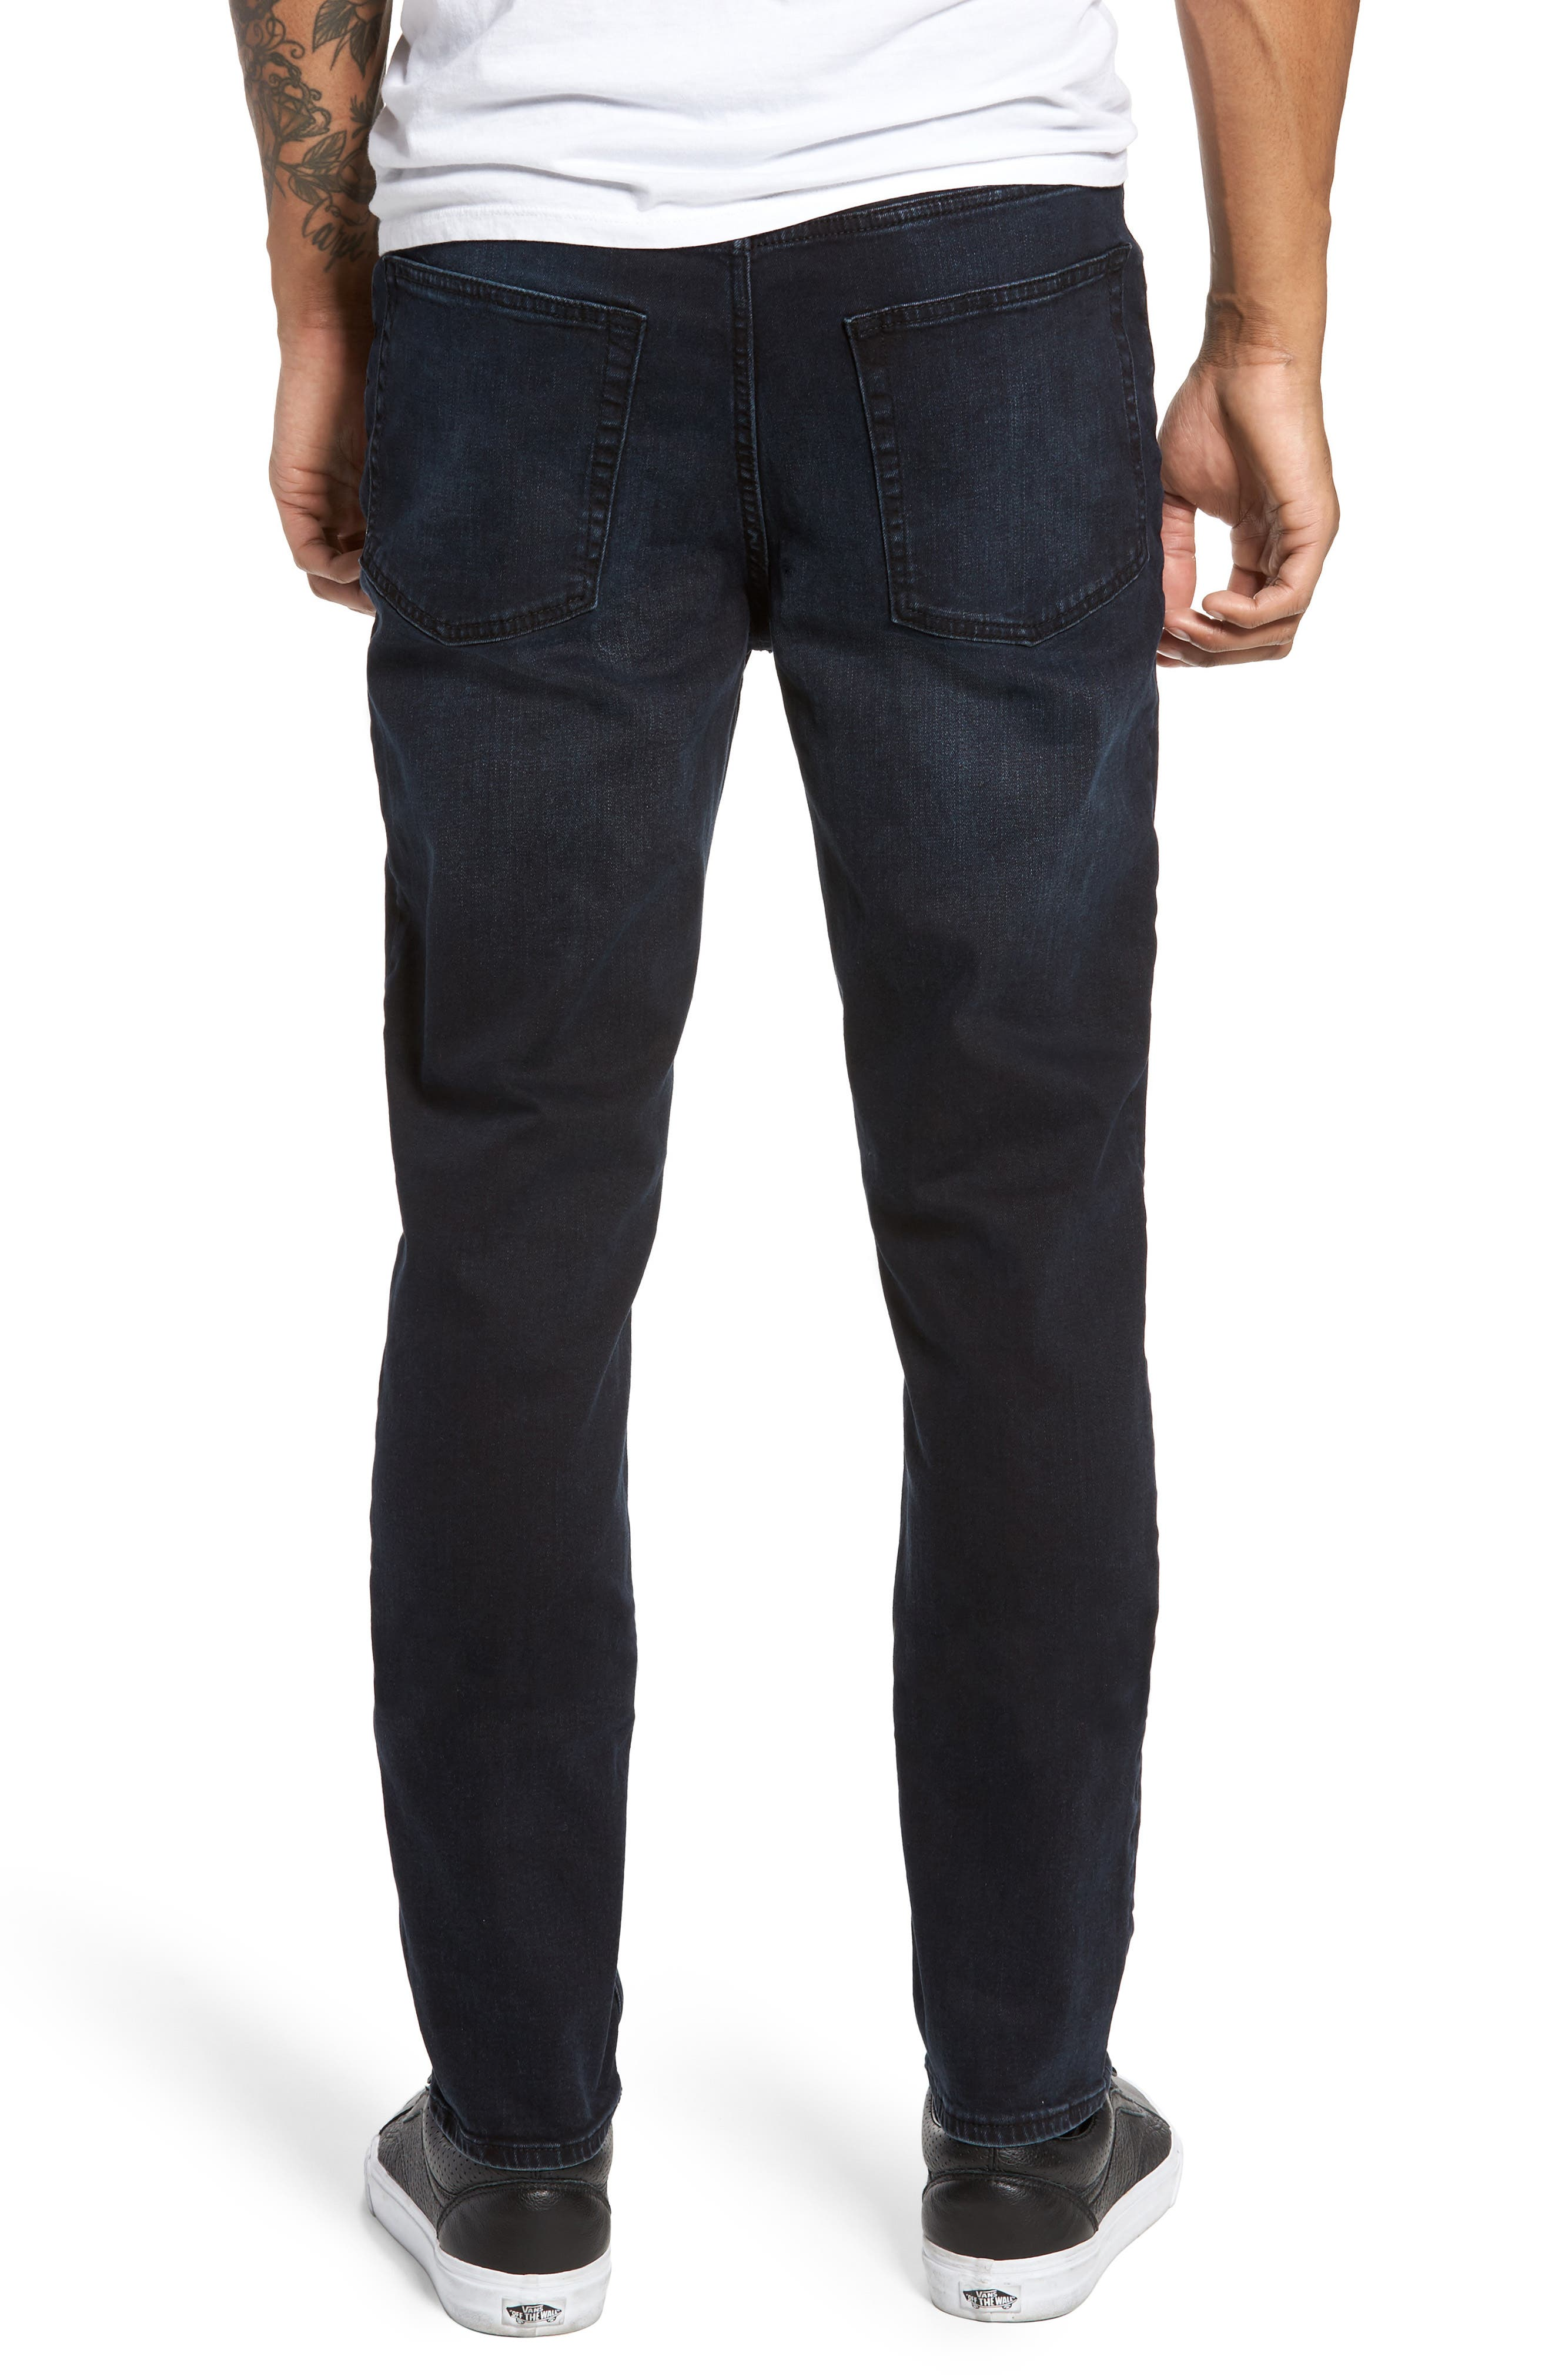 Sonic Skinny Fit Jeans,                             Alternate thumbnail 2, color,                             Blue/ Black